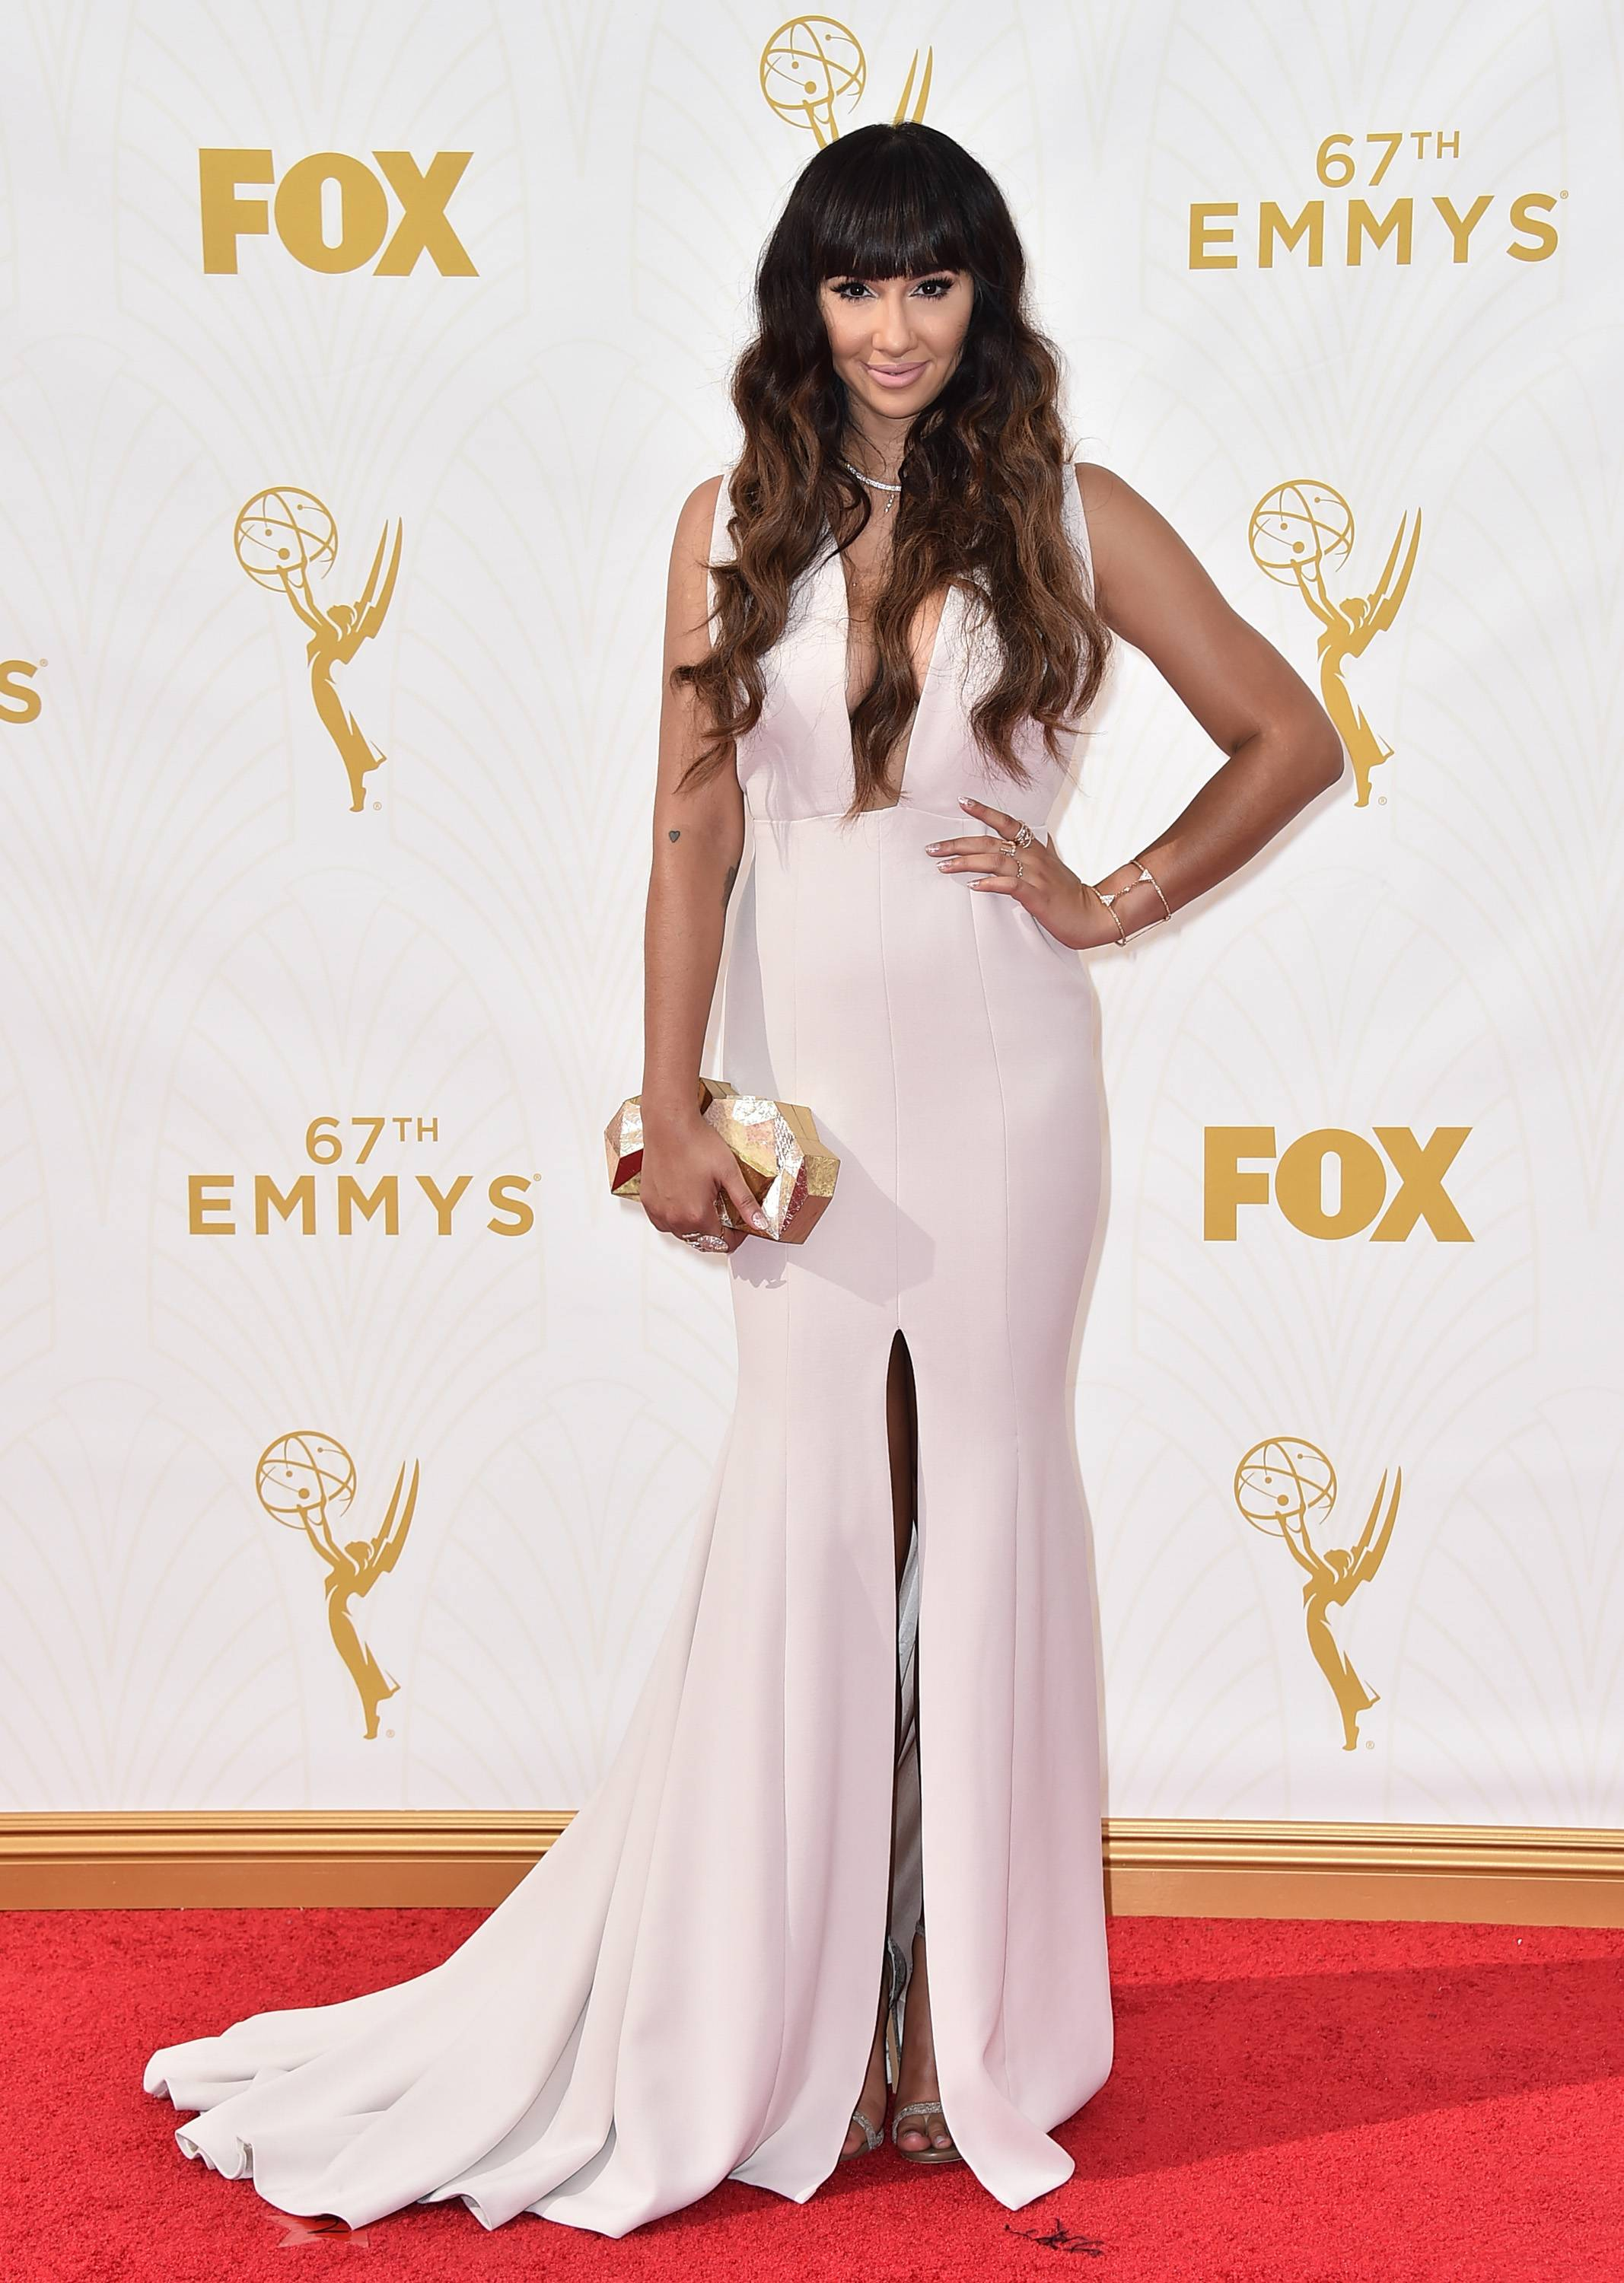 Daytime Emmy Awards 2018 Red Carpet Fashion: See All the 18